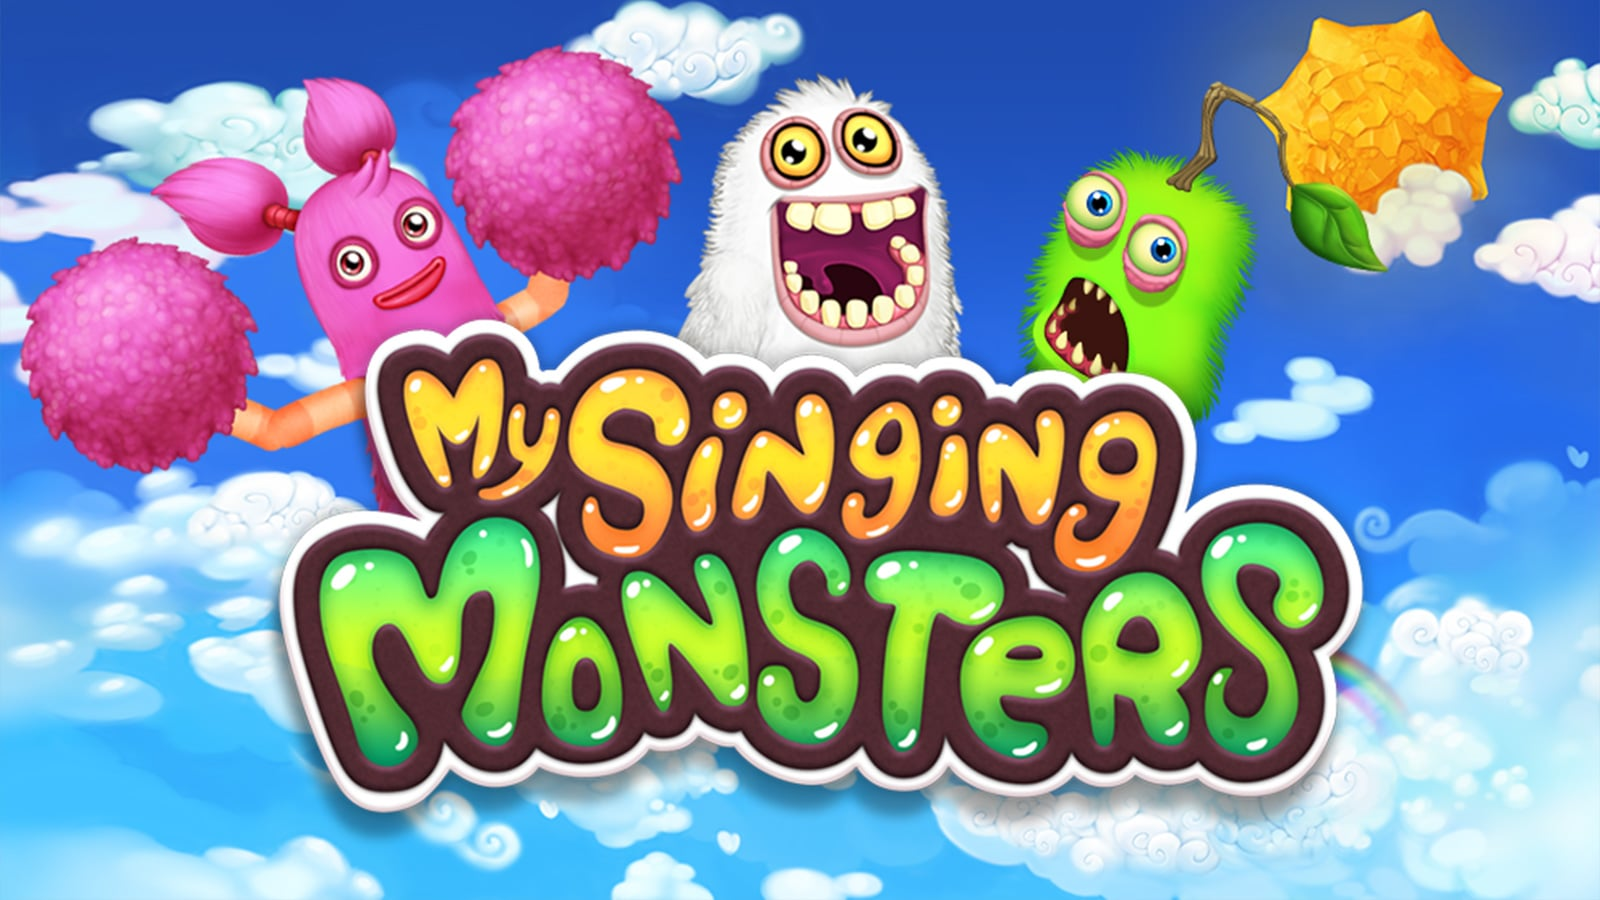 My Singing Monsters visual identity